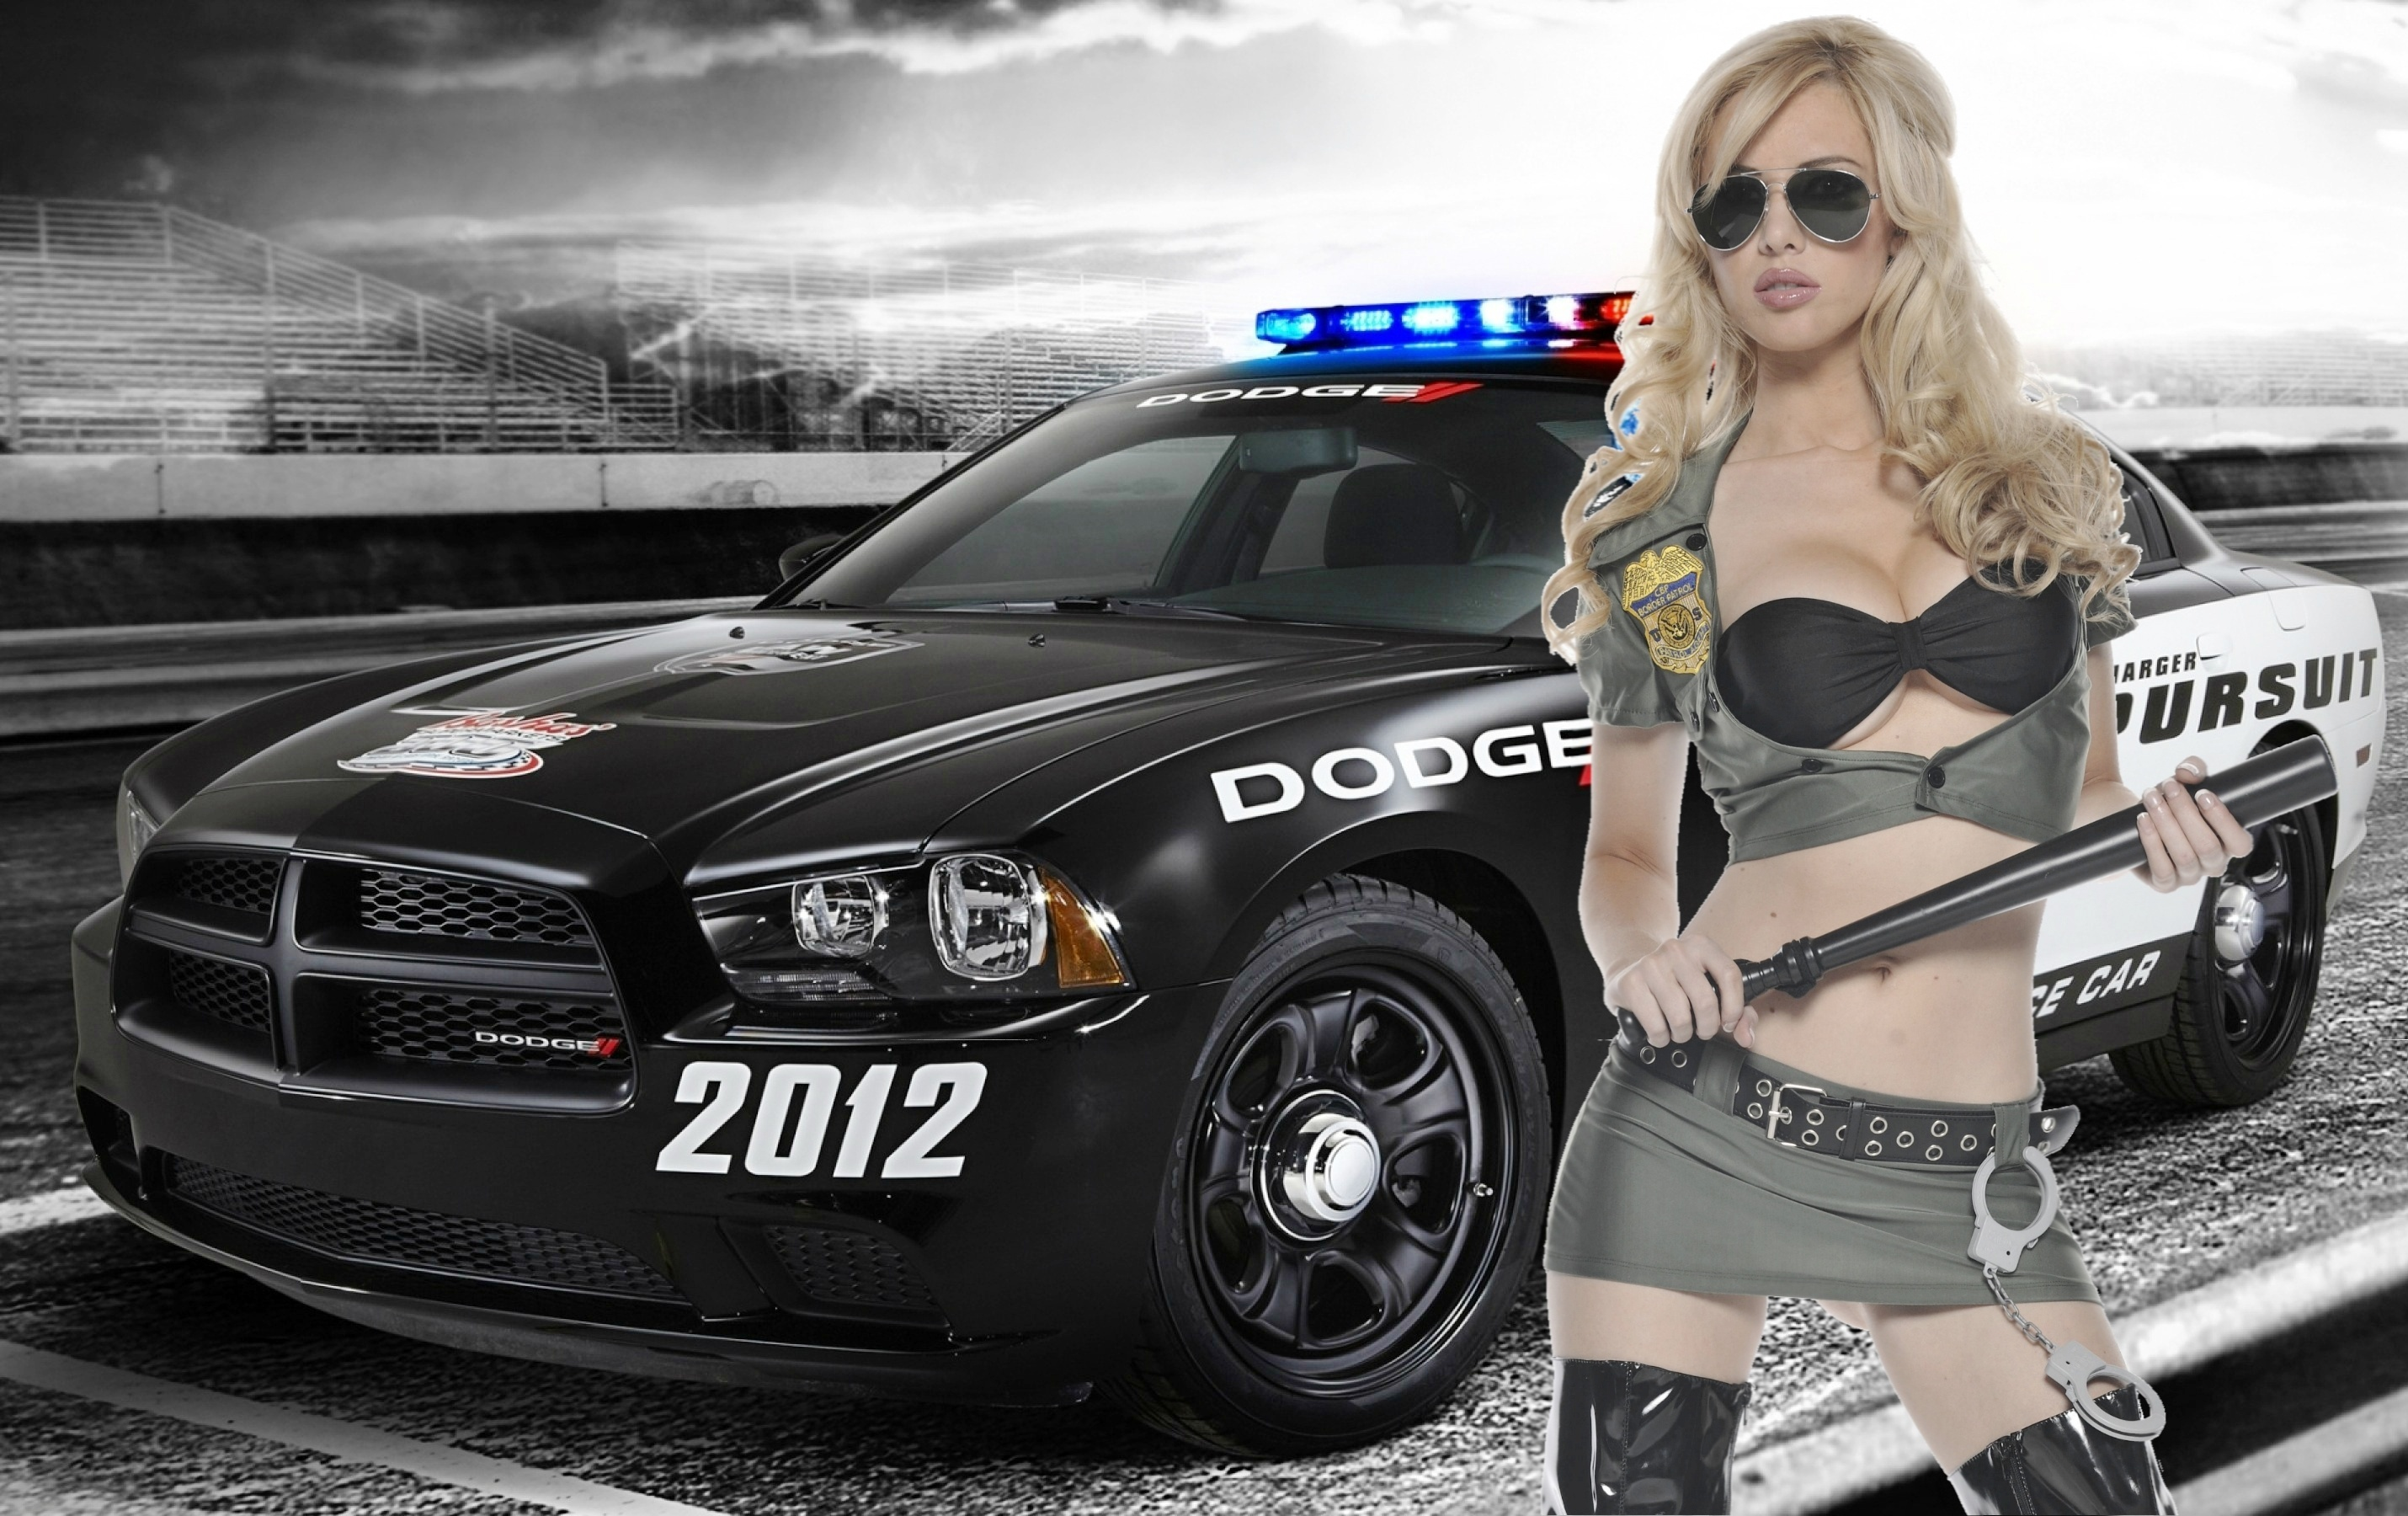 Girl, Blonde, Car, Uniforms, Machine, Form, Handcuffs, - Police Car And Girl , HD Wallpaper & Backgrounds